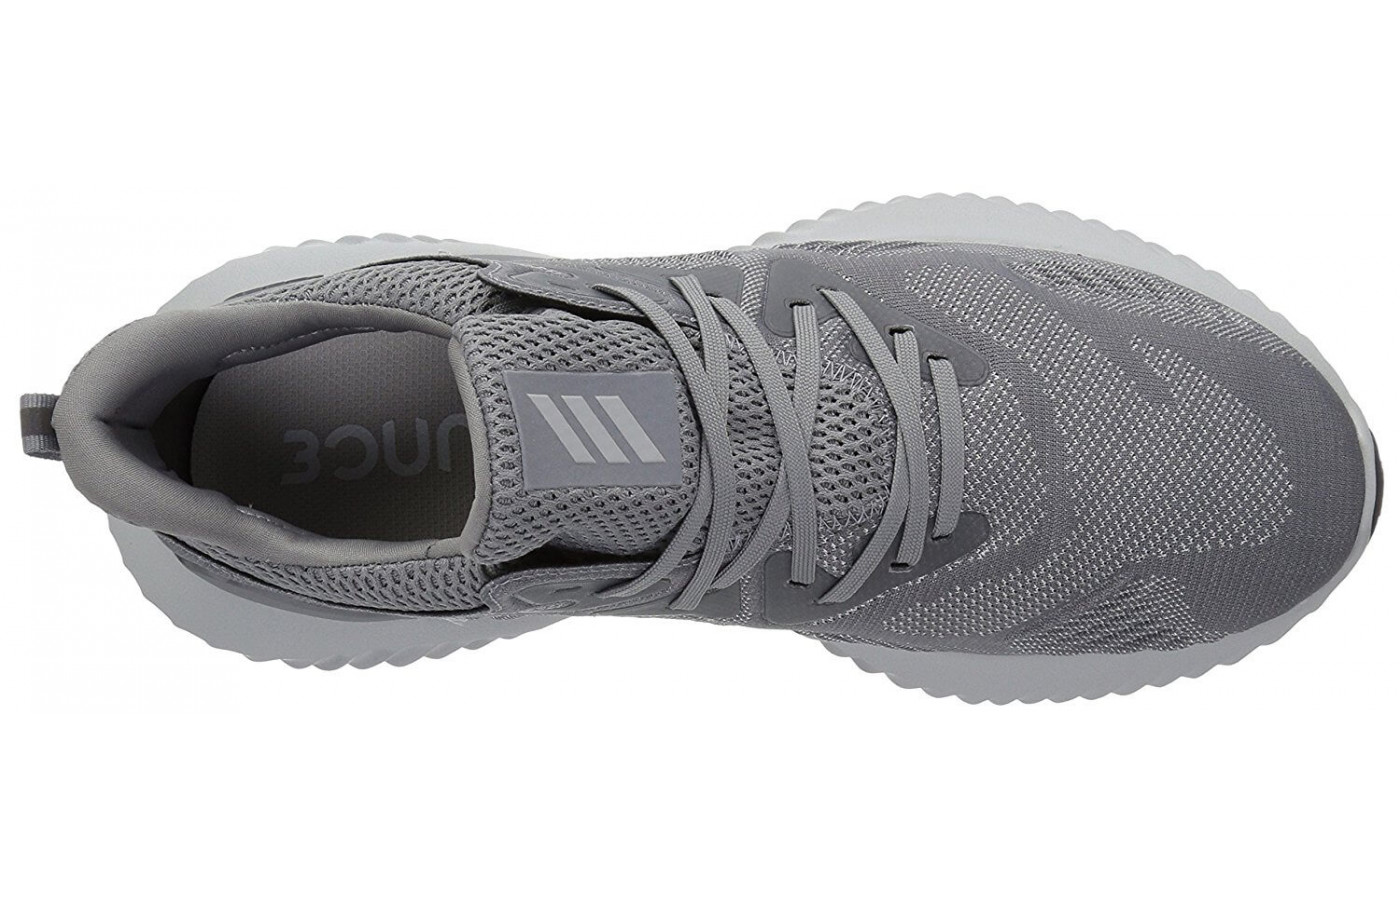 edc5f15af Adidas Alphabounce Beyond - To Buy or Not in May 2019